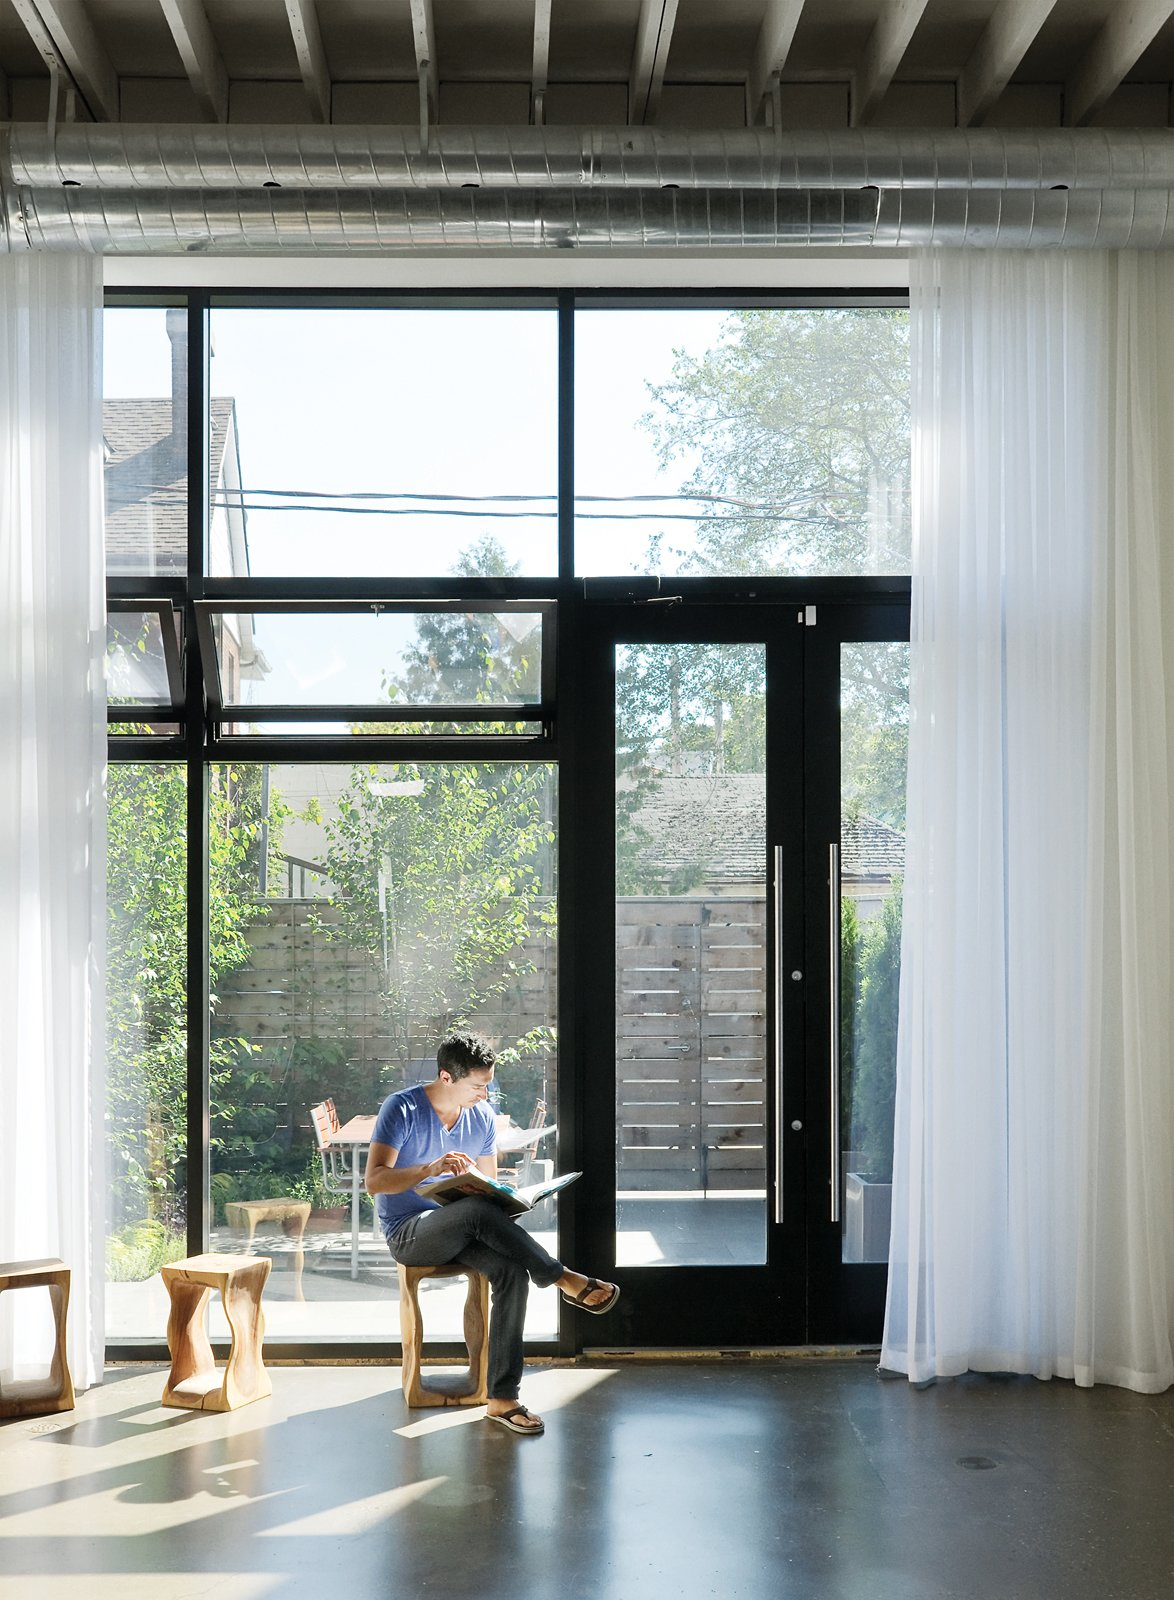 In the house's front room Monkman relaxes on a stool from local retailer Andrew Richard Designs. A new window system draws in sunlight and views of the front courtyard designed by local landscape architect Terry McGlade, the building's former owner.